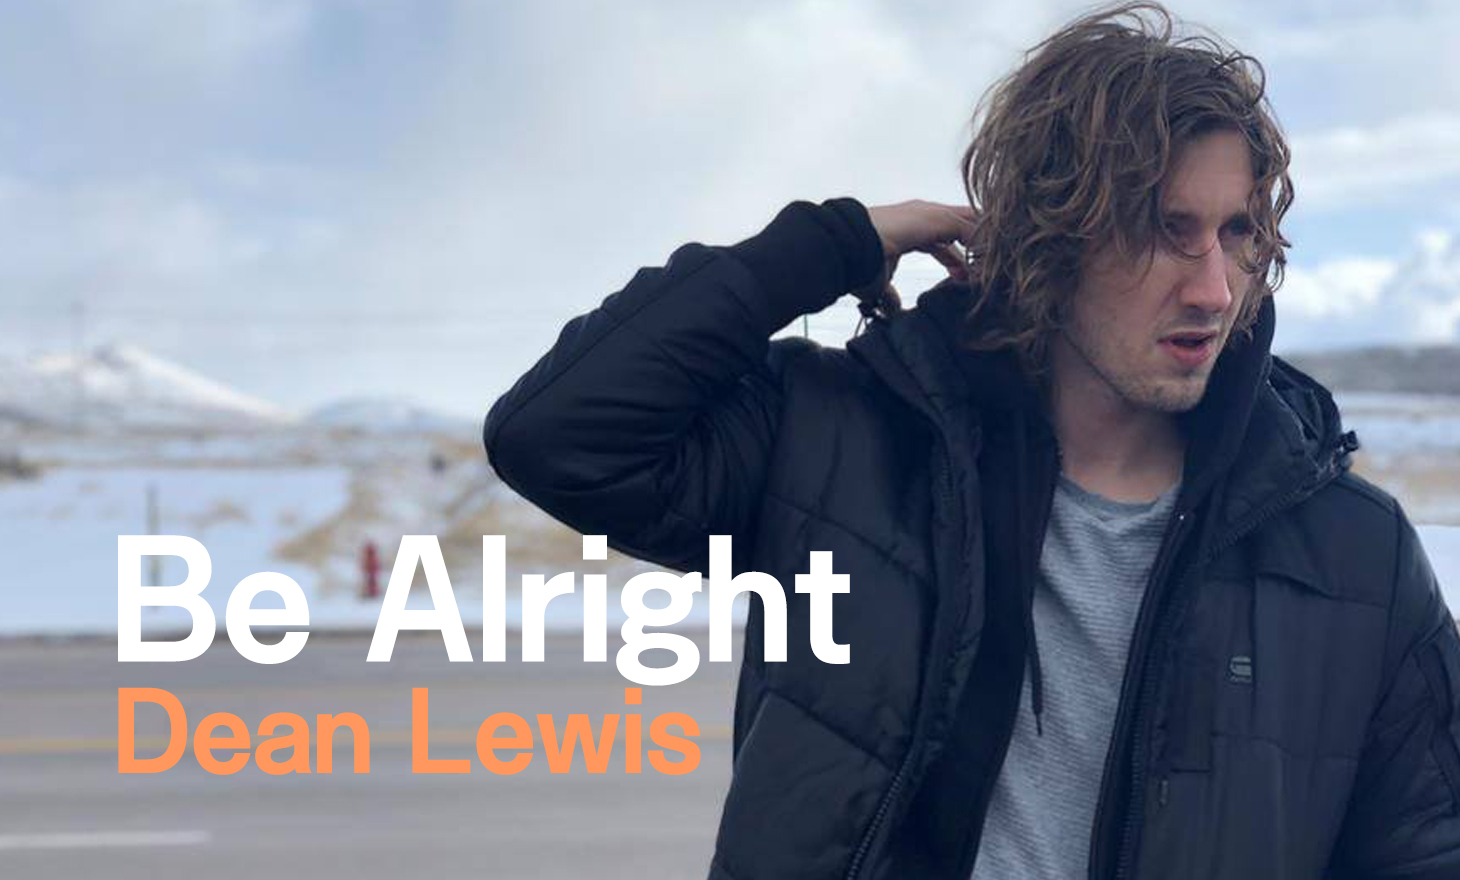 Dean Lewis : Be Alright